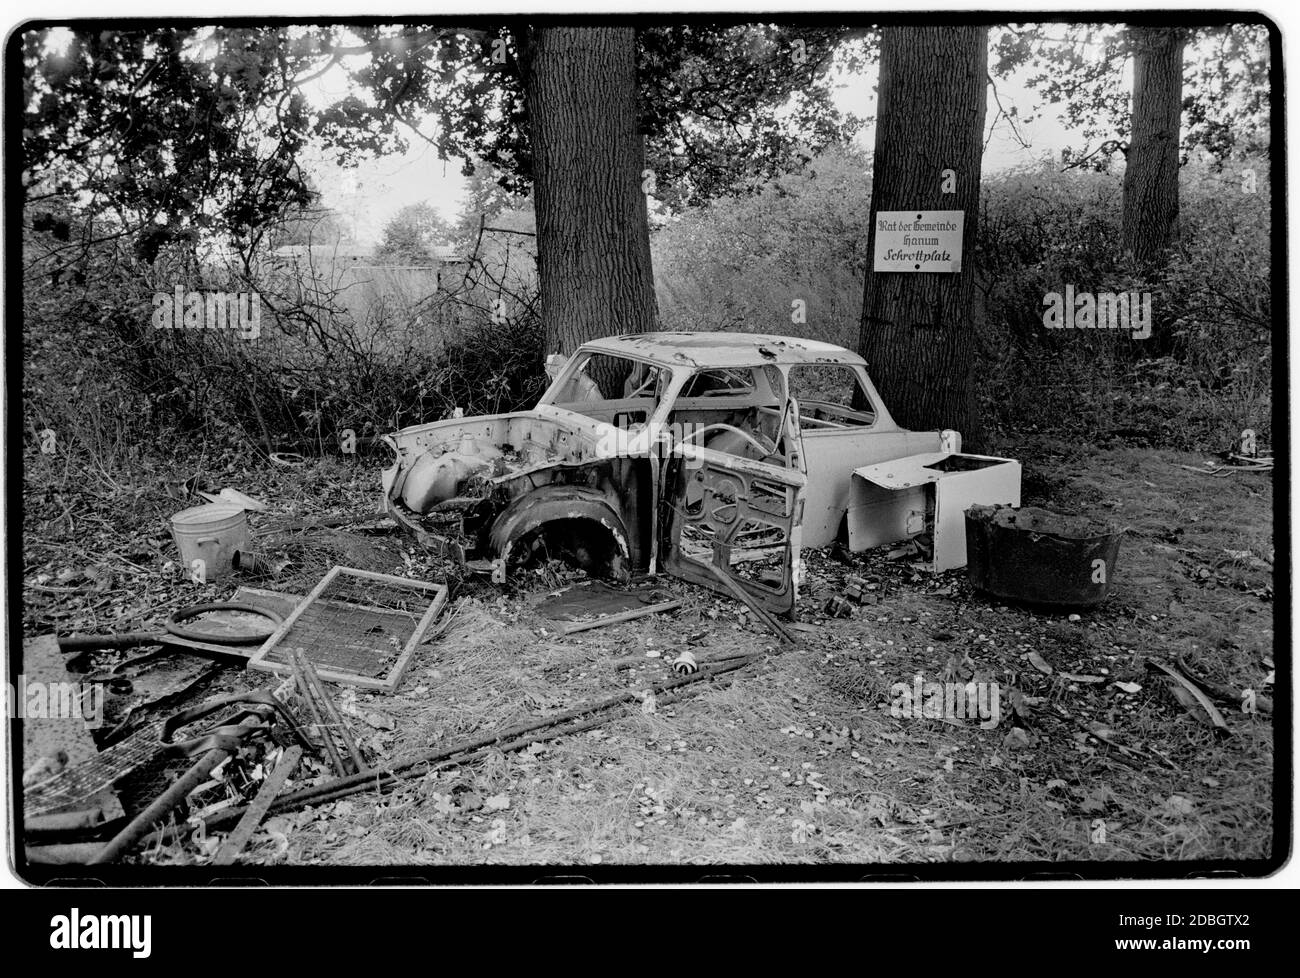 East Germany 1990 scanned in 2020 Trabant car destroyed in Hanum East Germany, Deutsche Demokratische Republik the DDR after the fall of the Wall but before reunification March 1990 and scanned in 2020.East Germany, officially the German Democratic Republic, was a country that existed from 1949 to 1990, the period when the eastern portion of Germany was part of the Eastern Bloc during the Cold War. Stock Photo